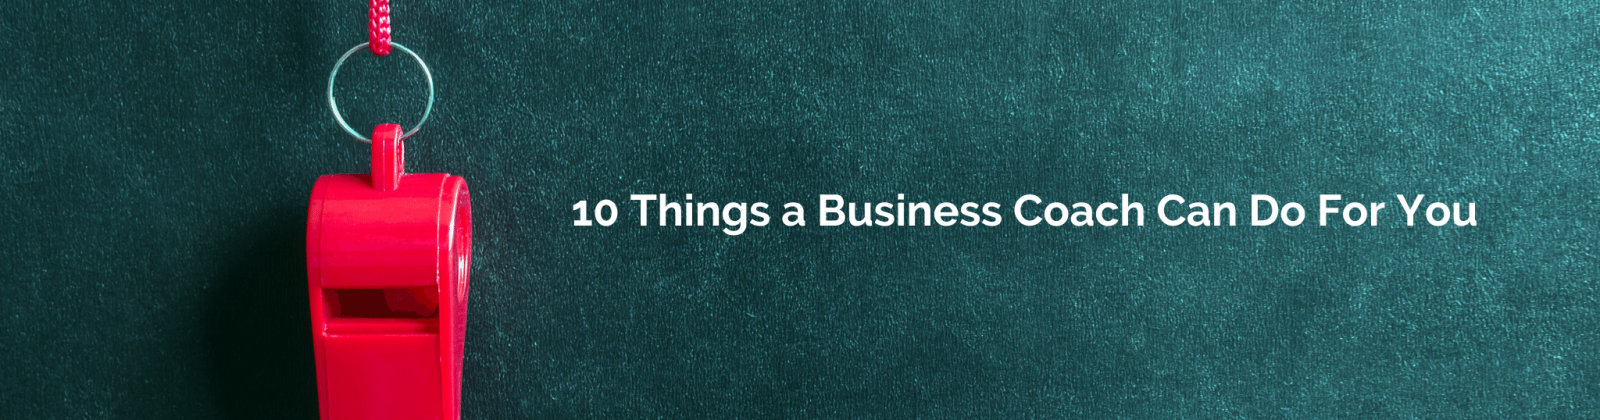 1`0 things a business coach can do for you